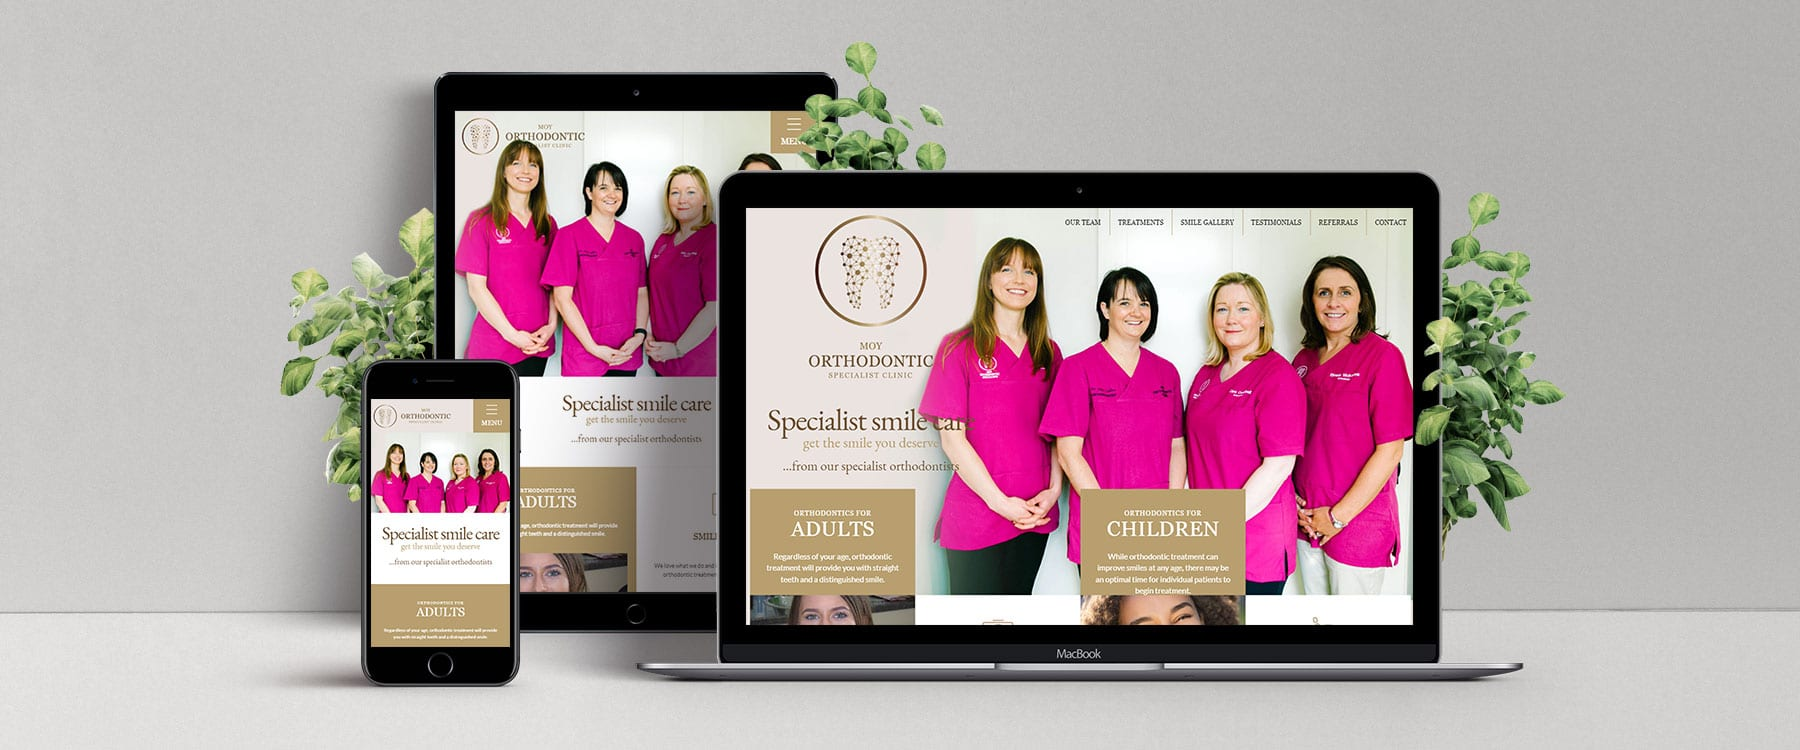 Moy Orthodontic Clinic Launch New Professional Website Image